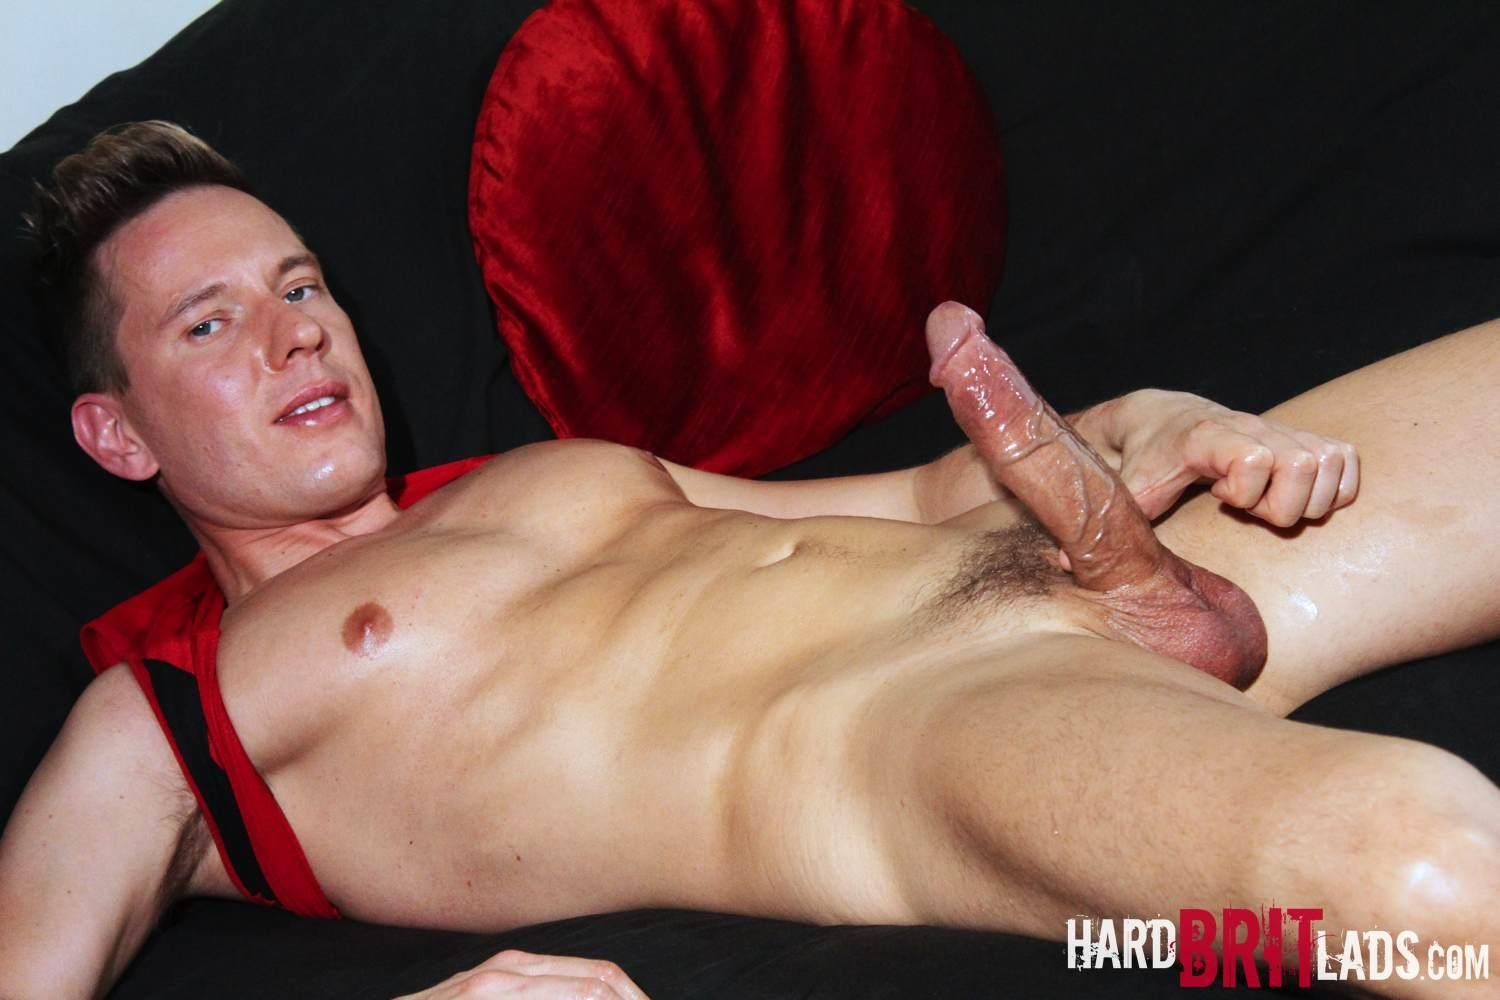 Hard-Brit-Lads-James-Hard-Soccer-Player-Jerking-his-Big-Uncut-Cock-Amateur-Gay-Porn-18 Straight Soccer Player Jerking Off His Huge Uncut Cock